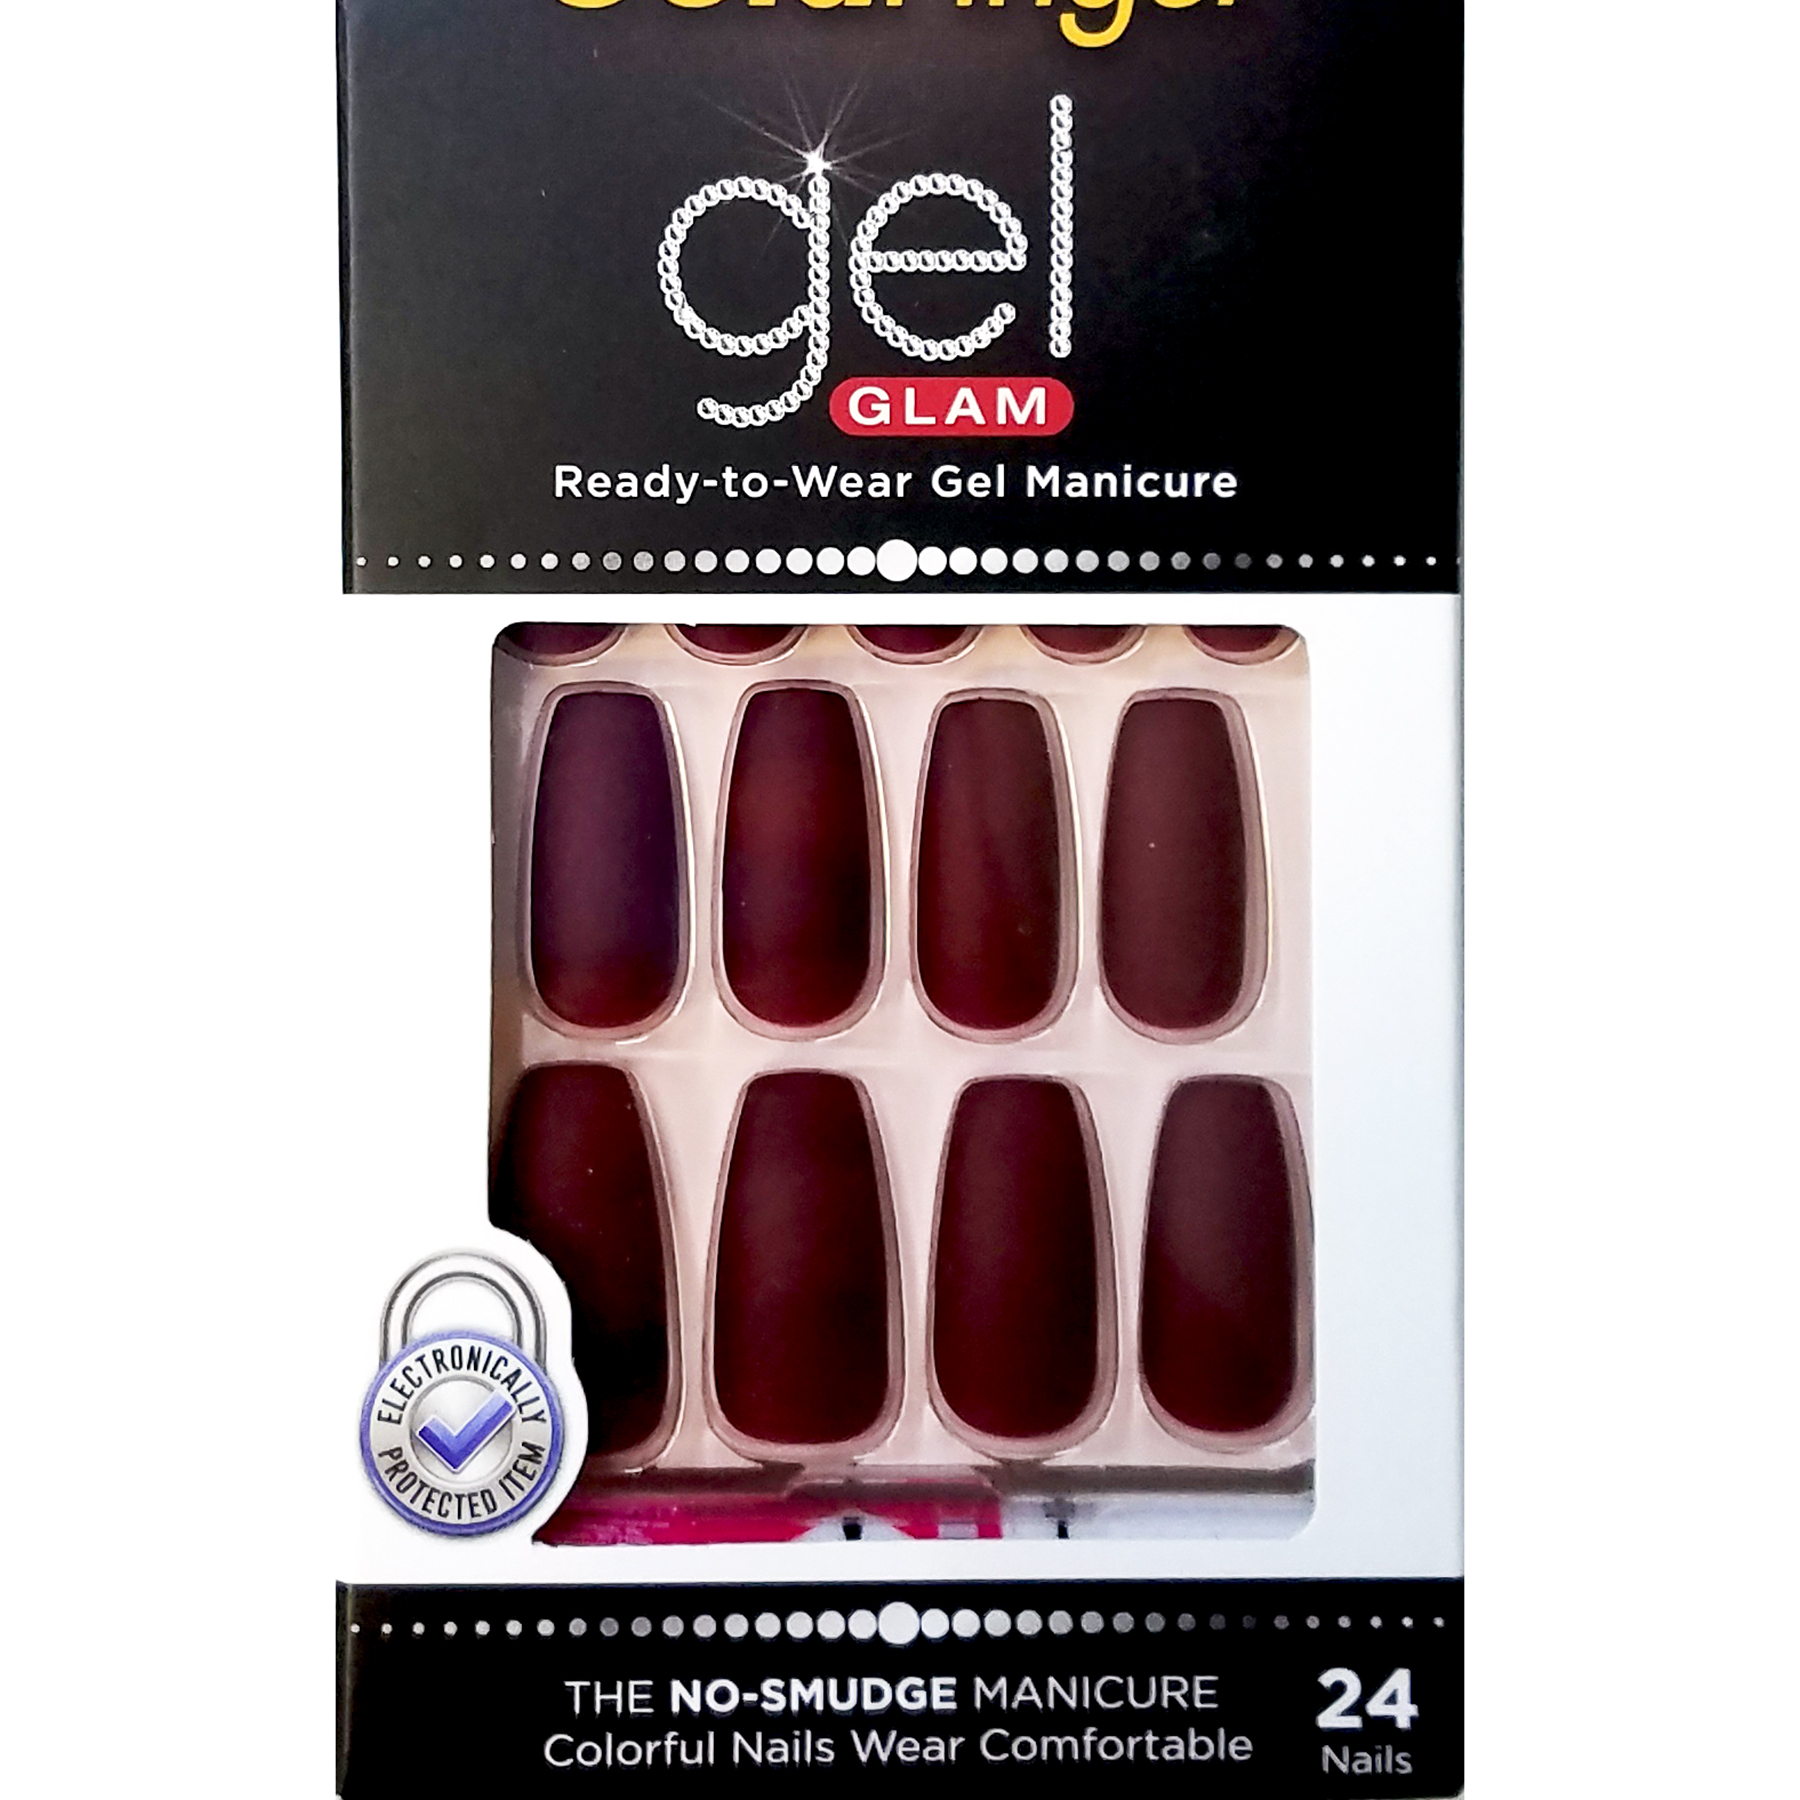 Details about KISS GOLD FINGER GEL GLAM MANICURE GLUE ON MATTE COFFIN 24 NAILS-GFC10 MAUVE